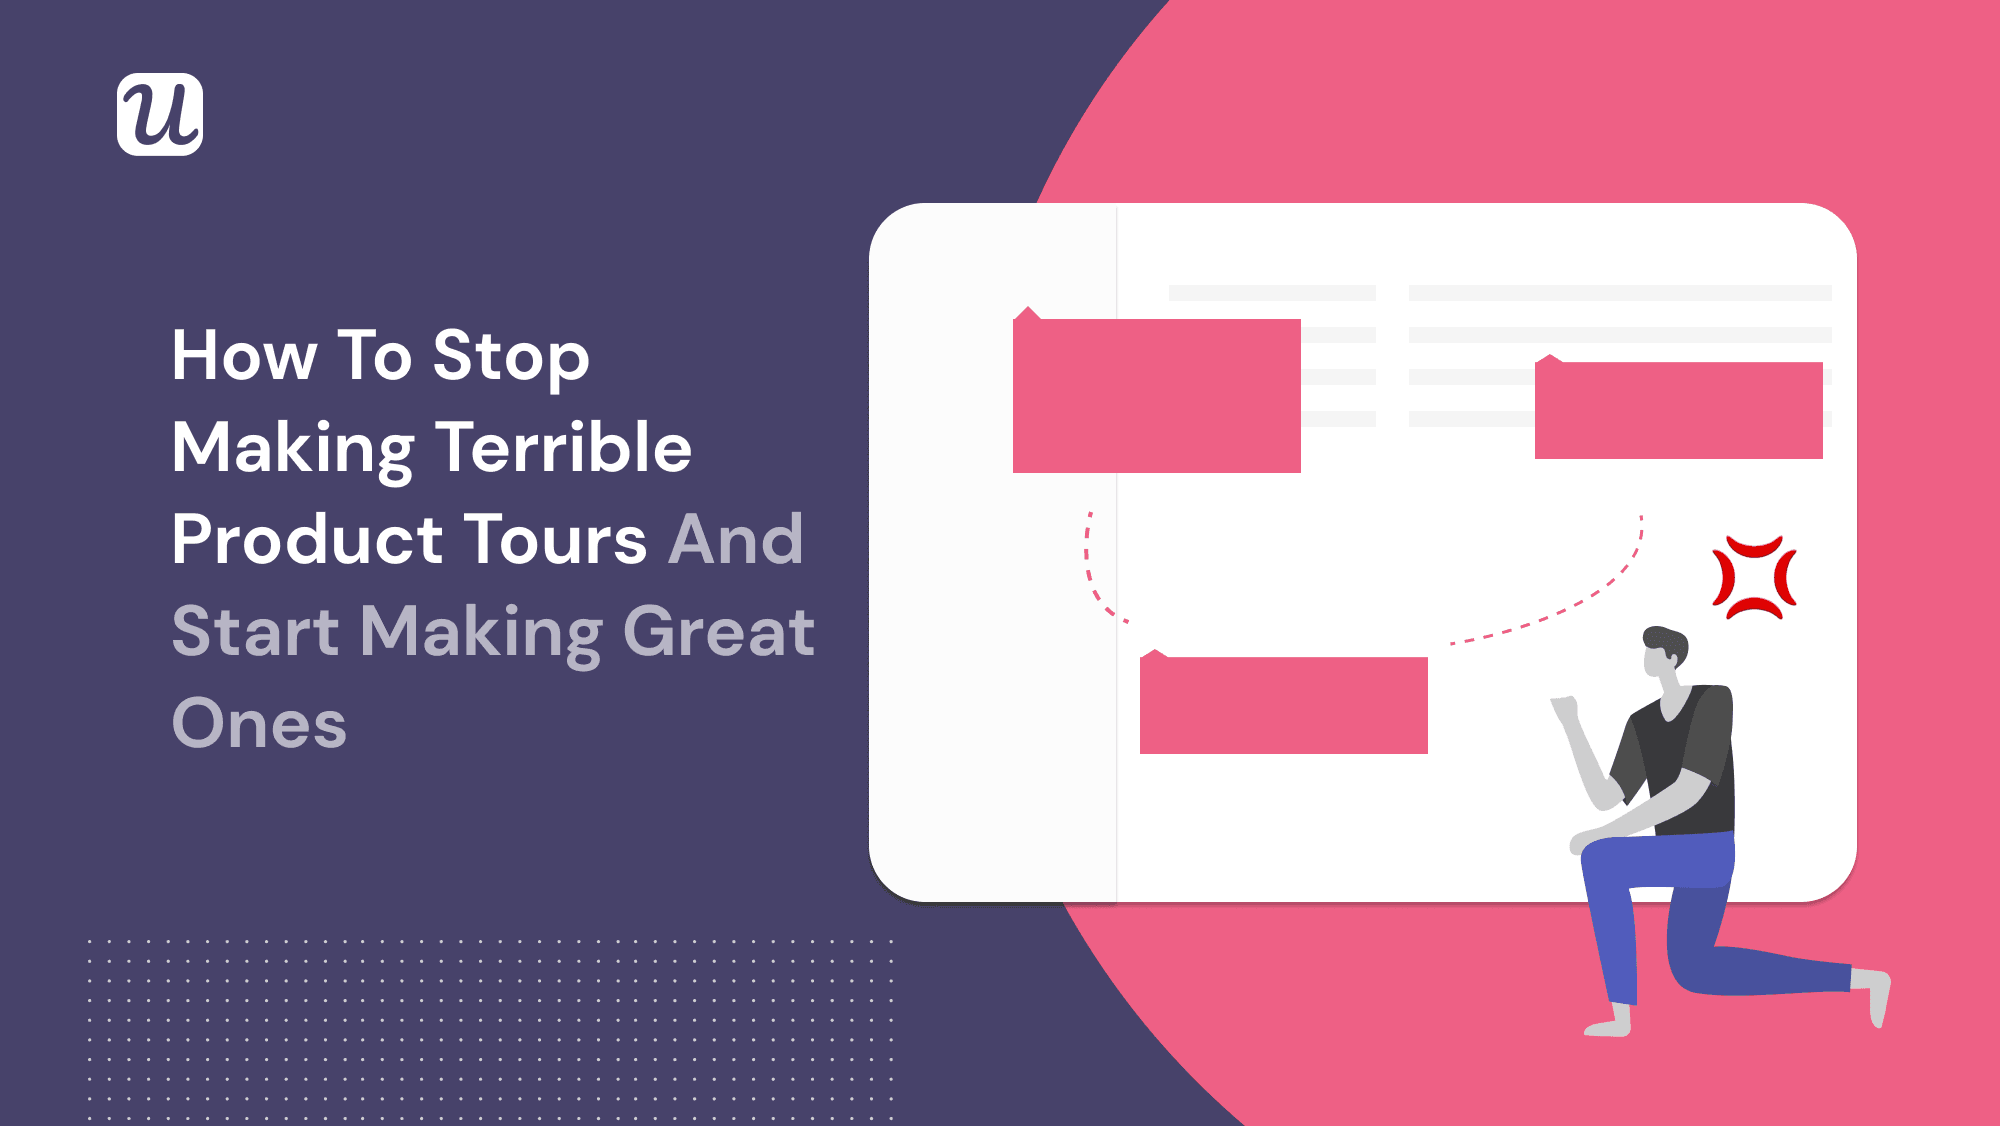 How to Stop Making Terrible Product Tours and Start Making Great Ones